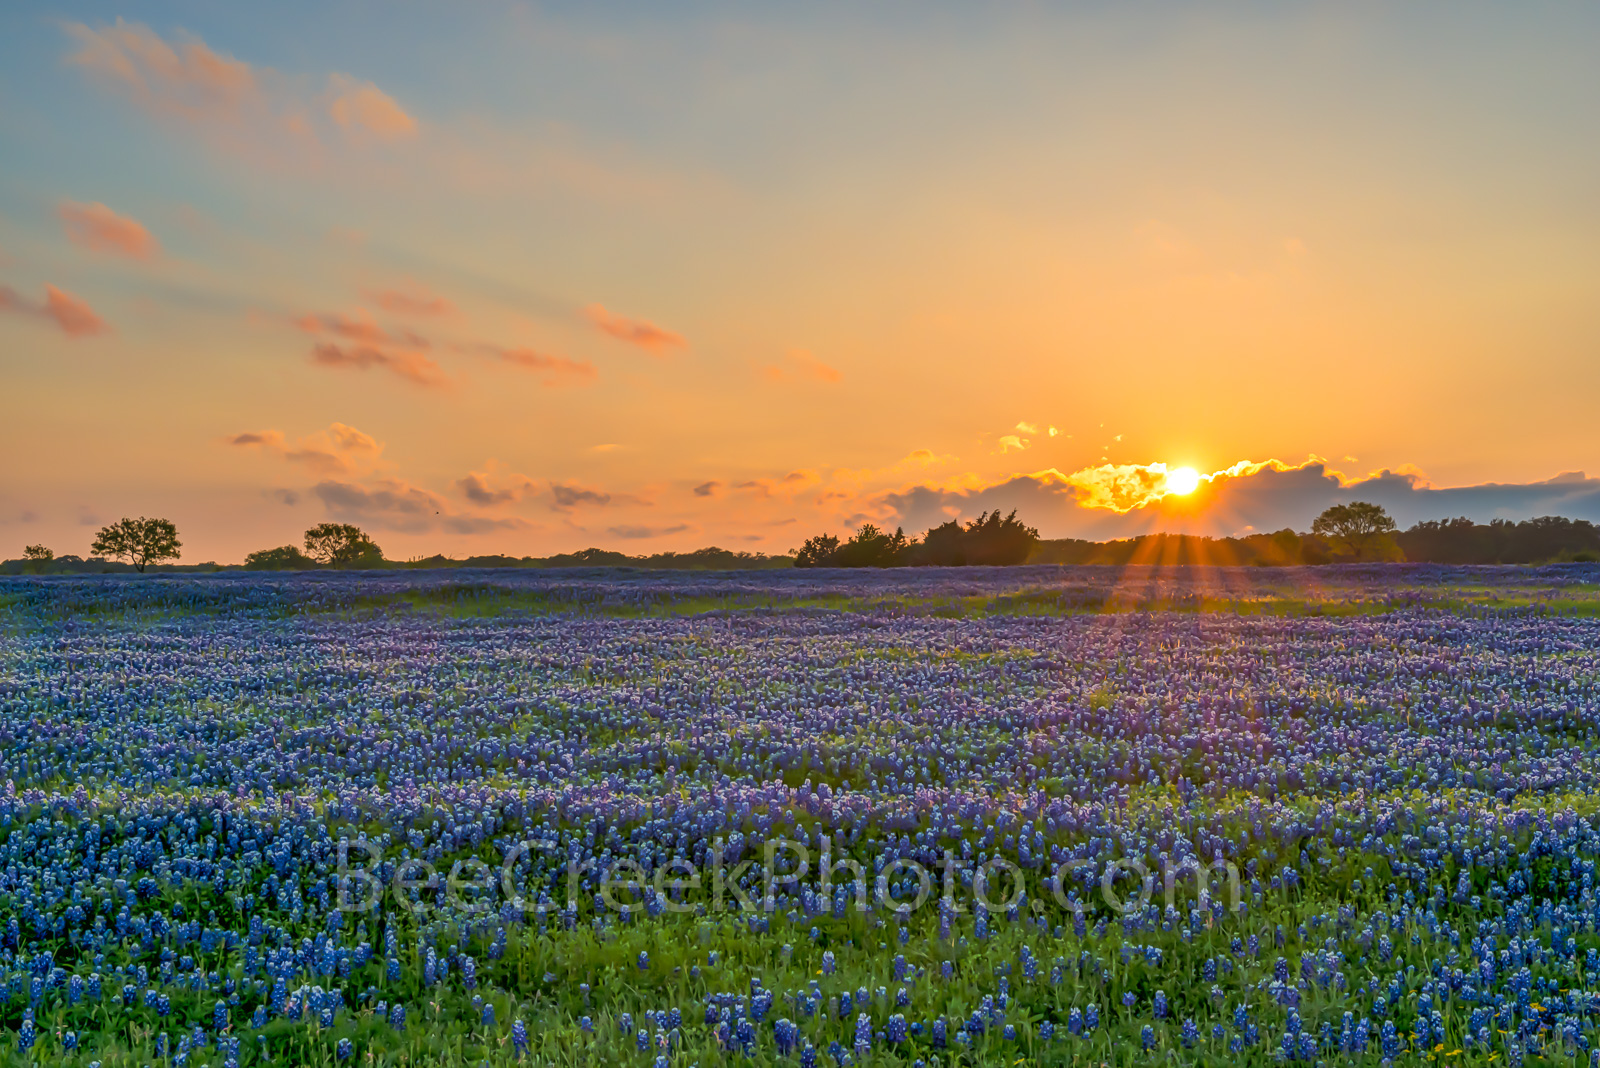 bluebonnets, bluebonnet, sunset, sunsets, field, field of bluebonnets, blue bonnets, fiery sky, colorful, red, yellows, orange, purple, landscape, landscapes, Texas Hill Country, spring, spring flower, photo